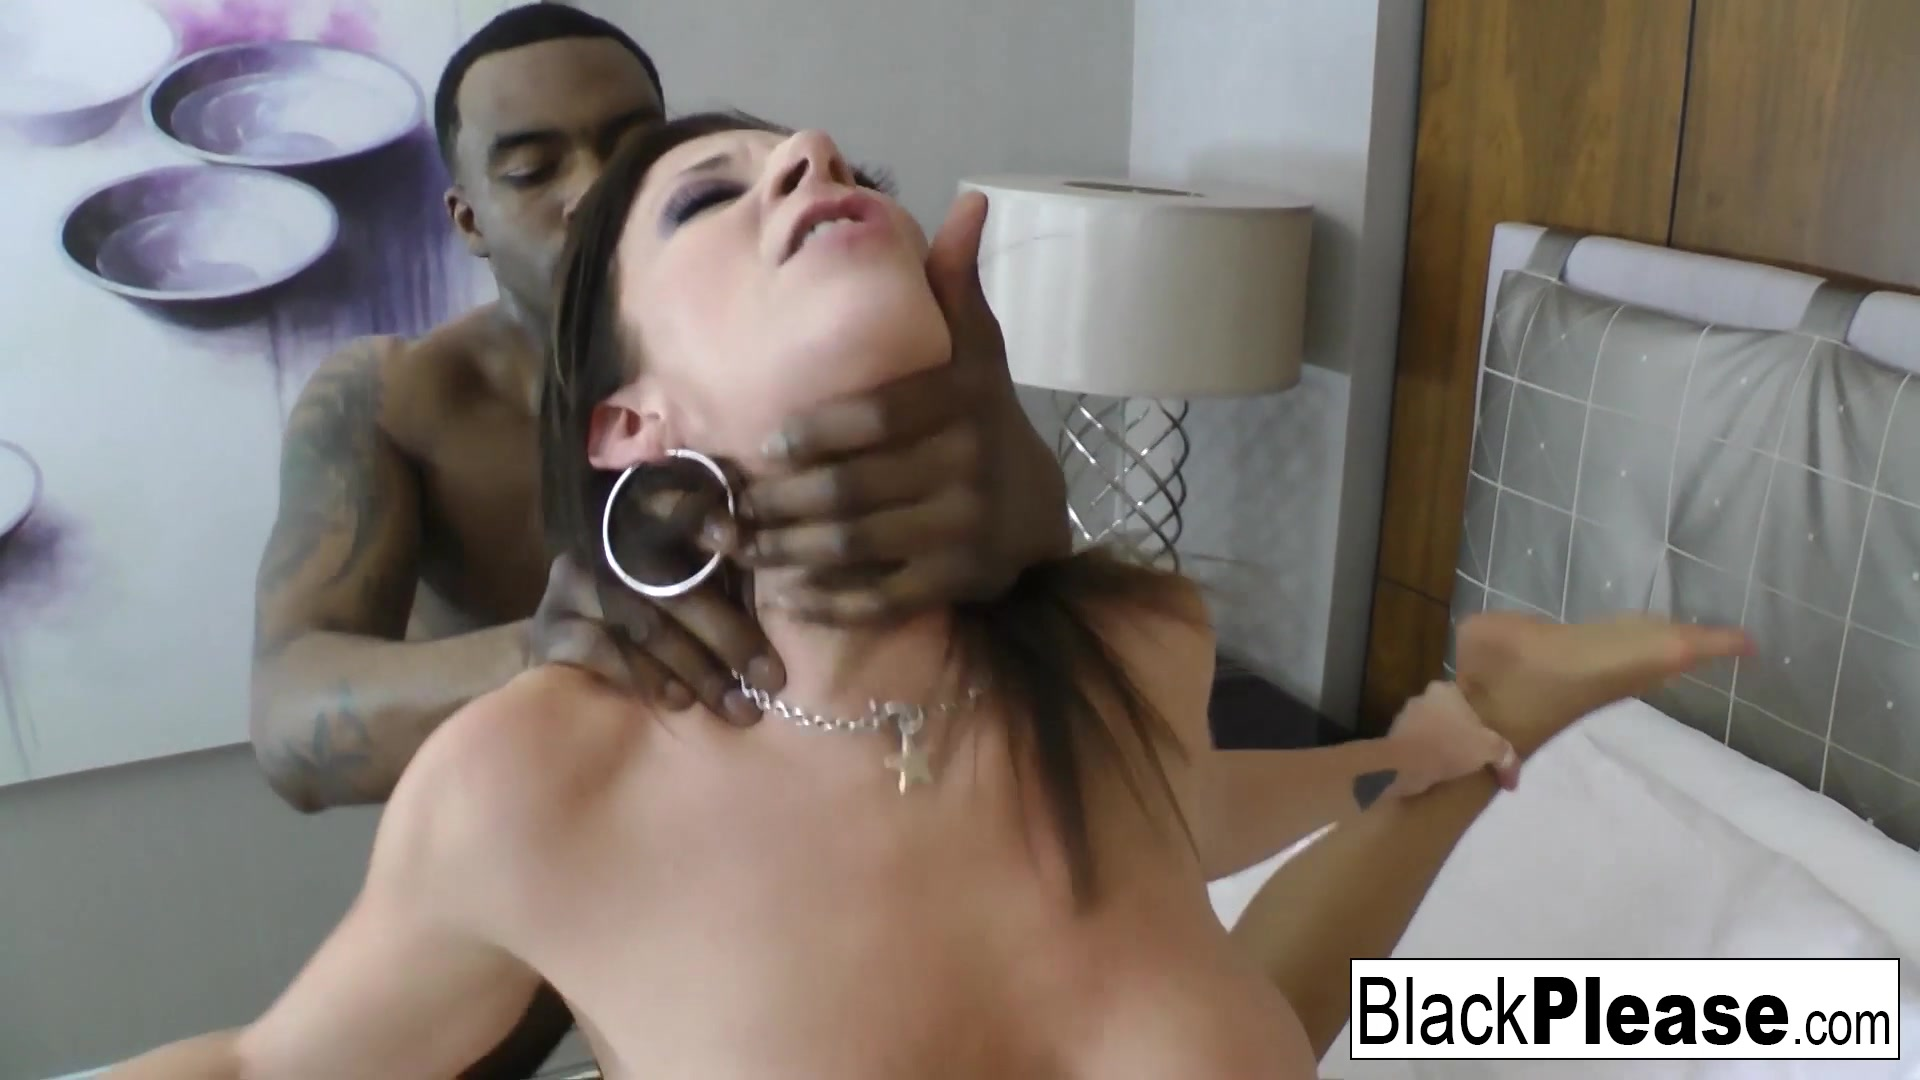 Sara Jay Alexis Golden in Two Busty Milfs Share A Big Black Cock - BlackPlease Big Ass Asian Nude